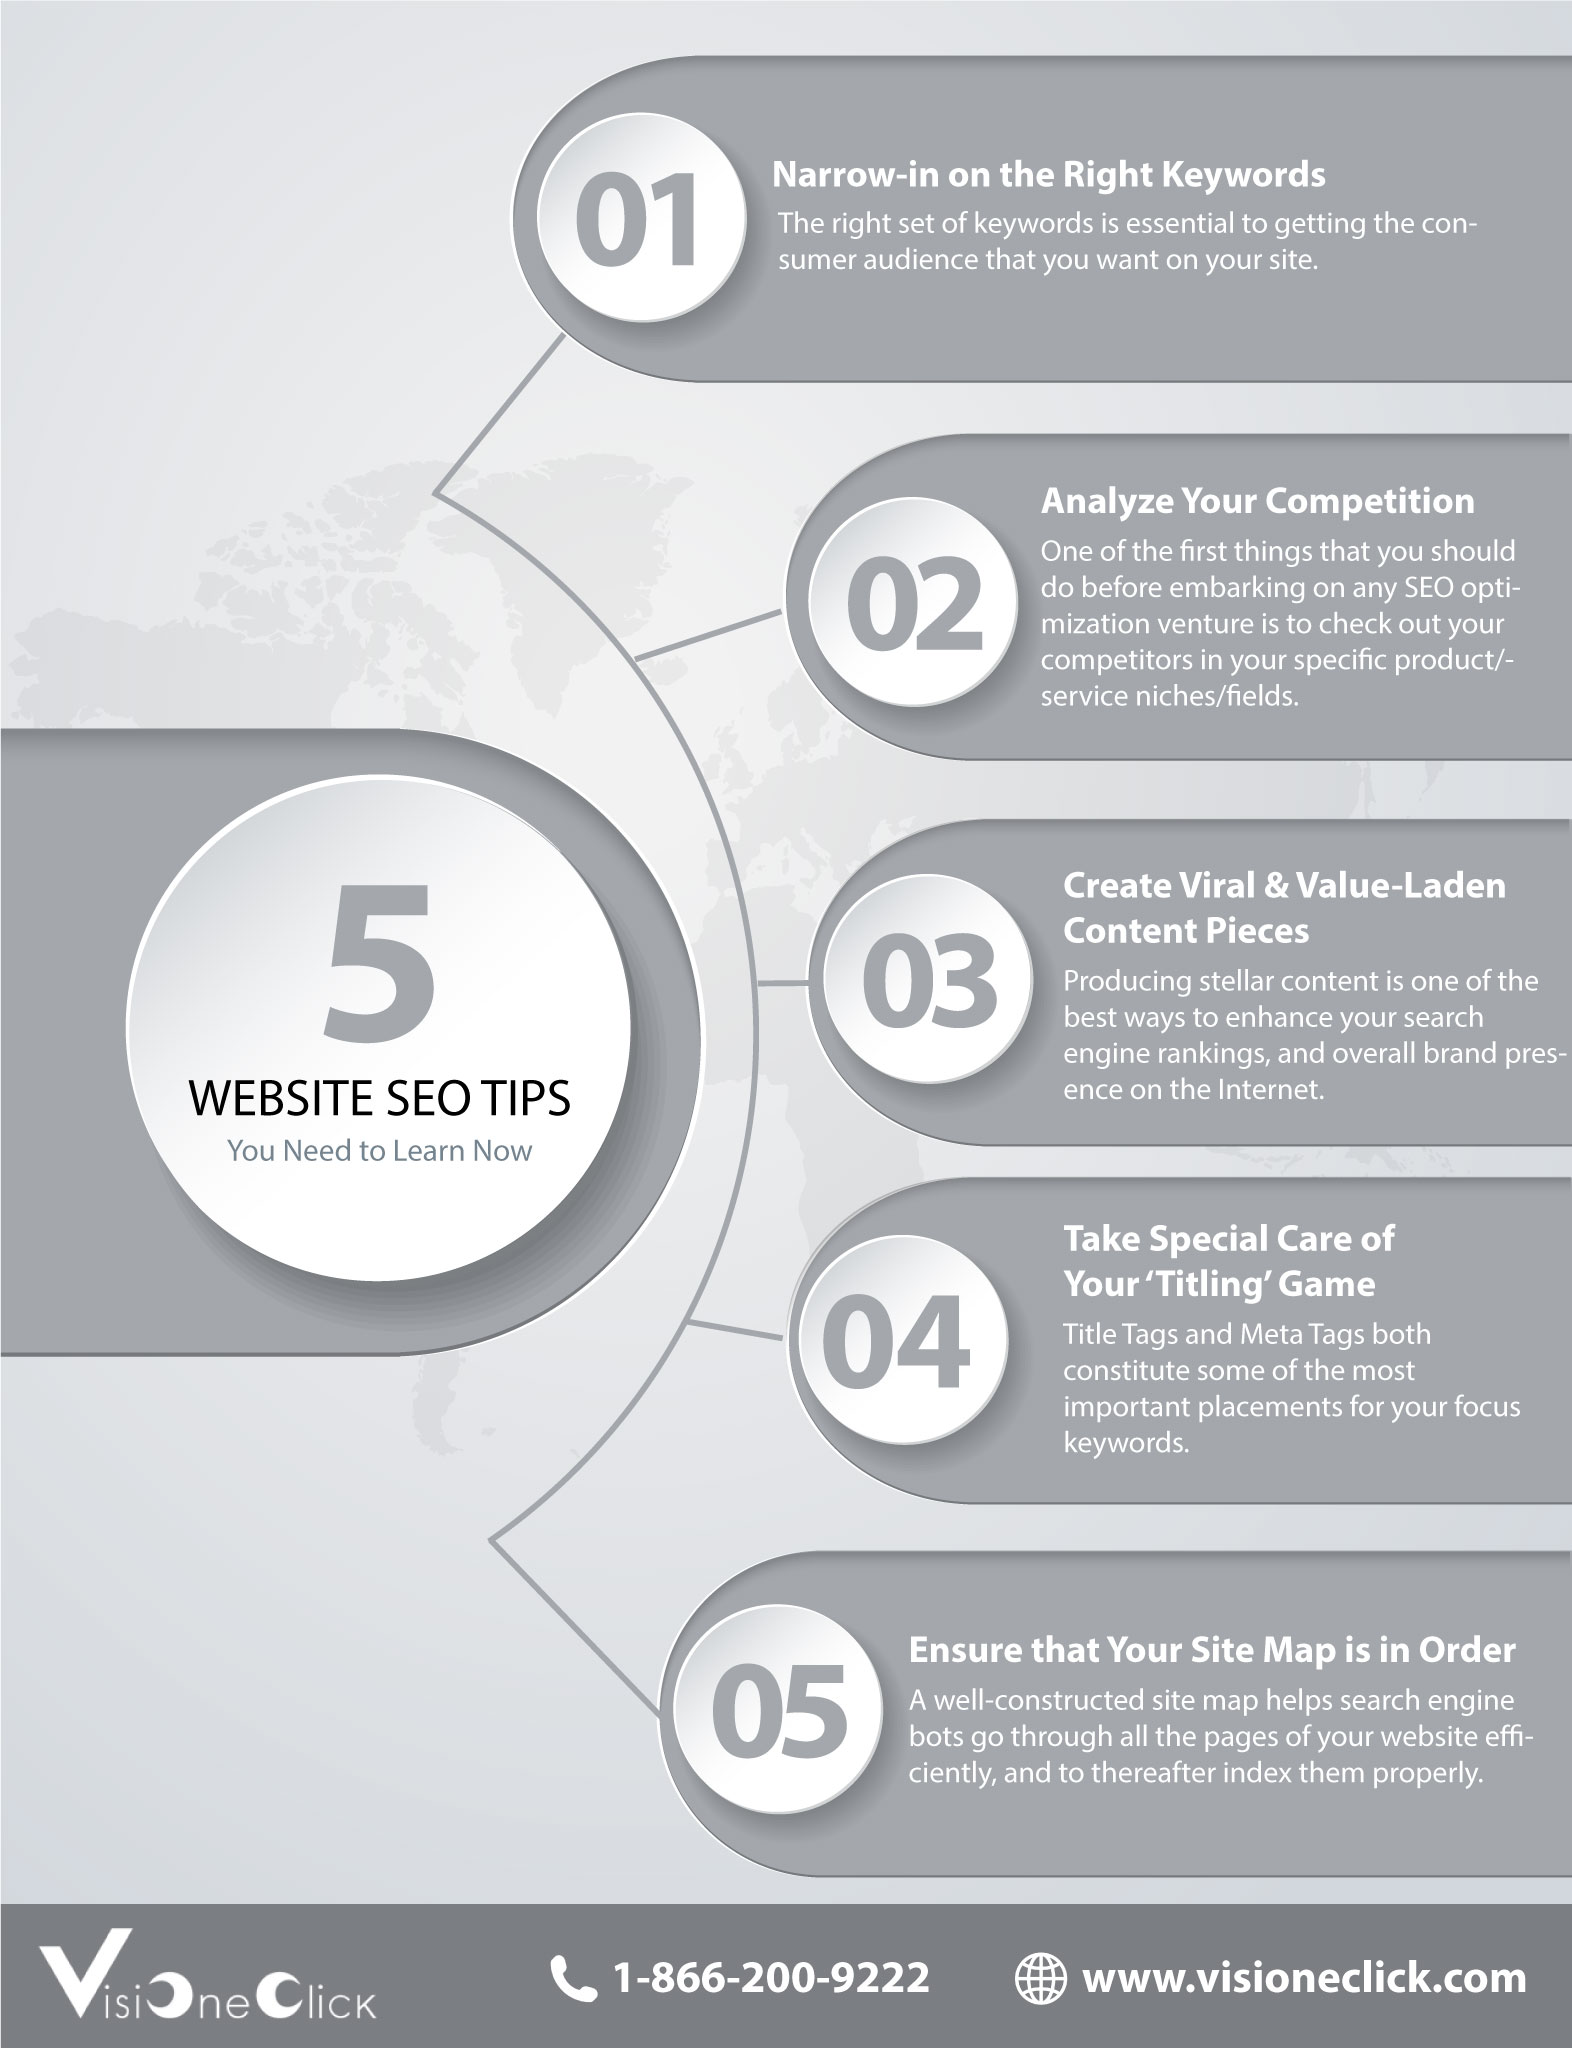 5 Website SEO Tips You Need to Learn Now